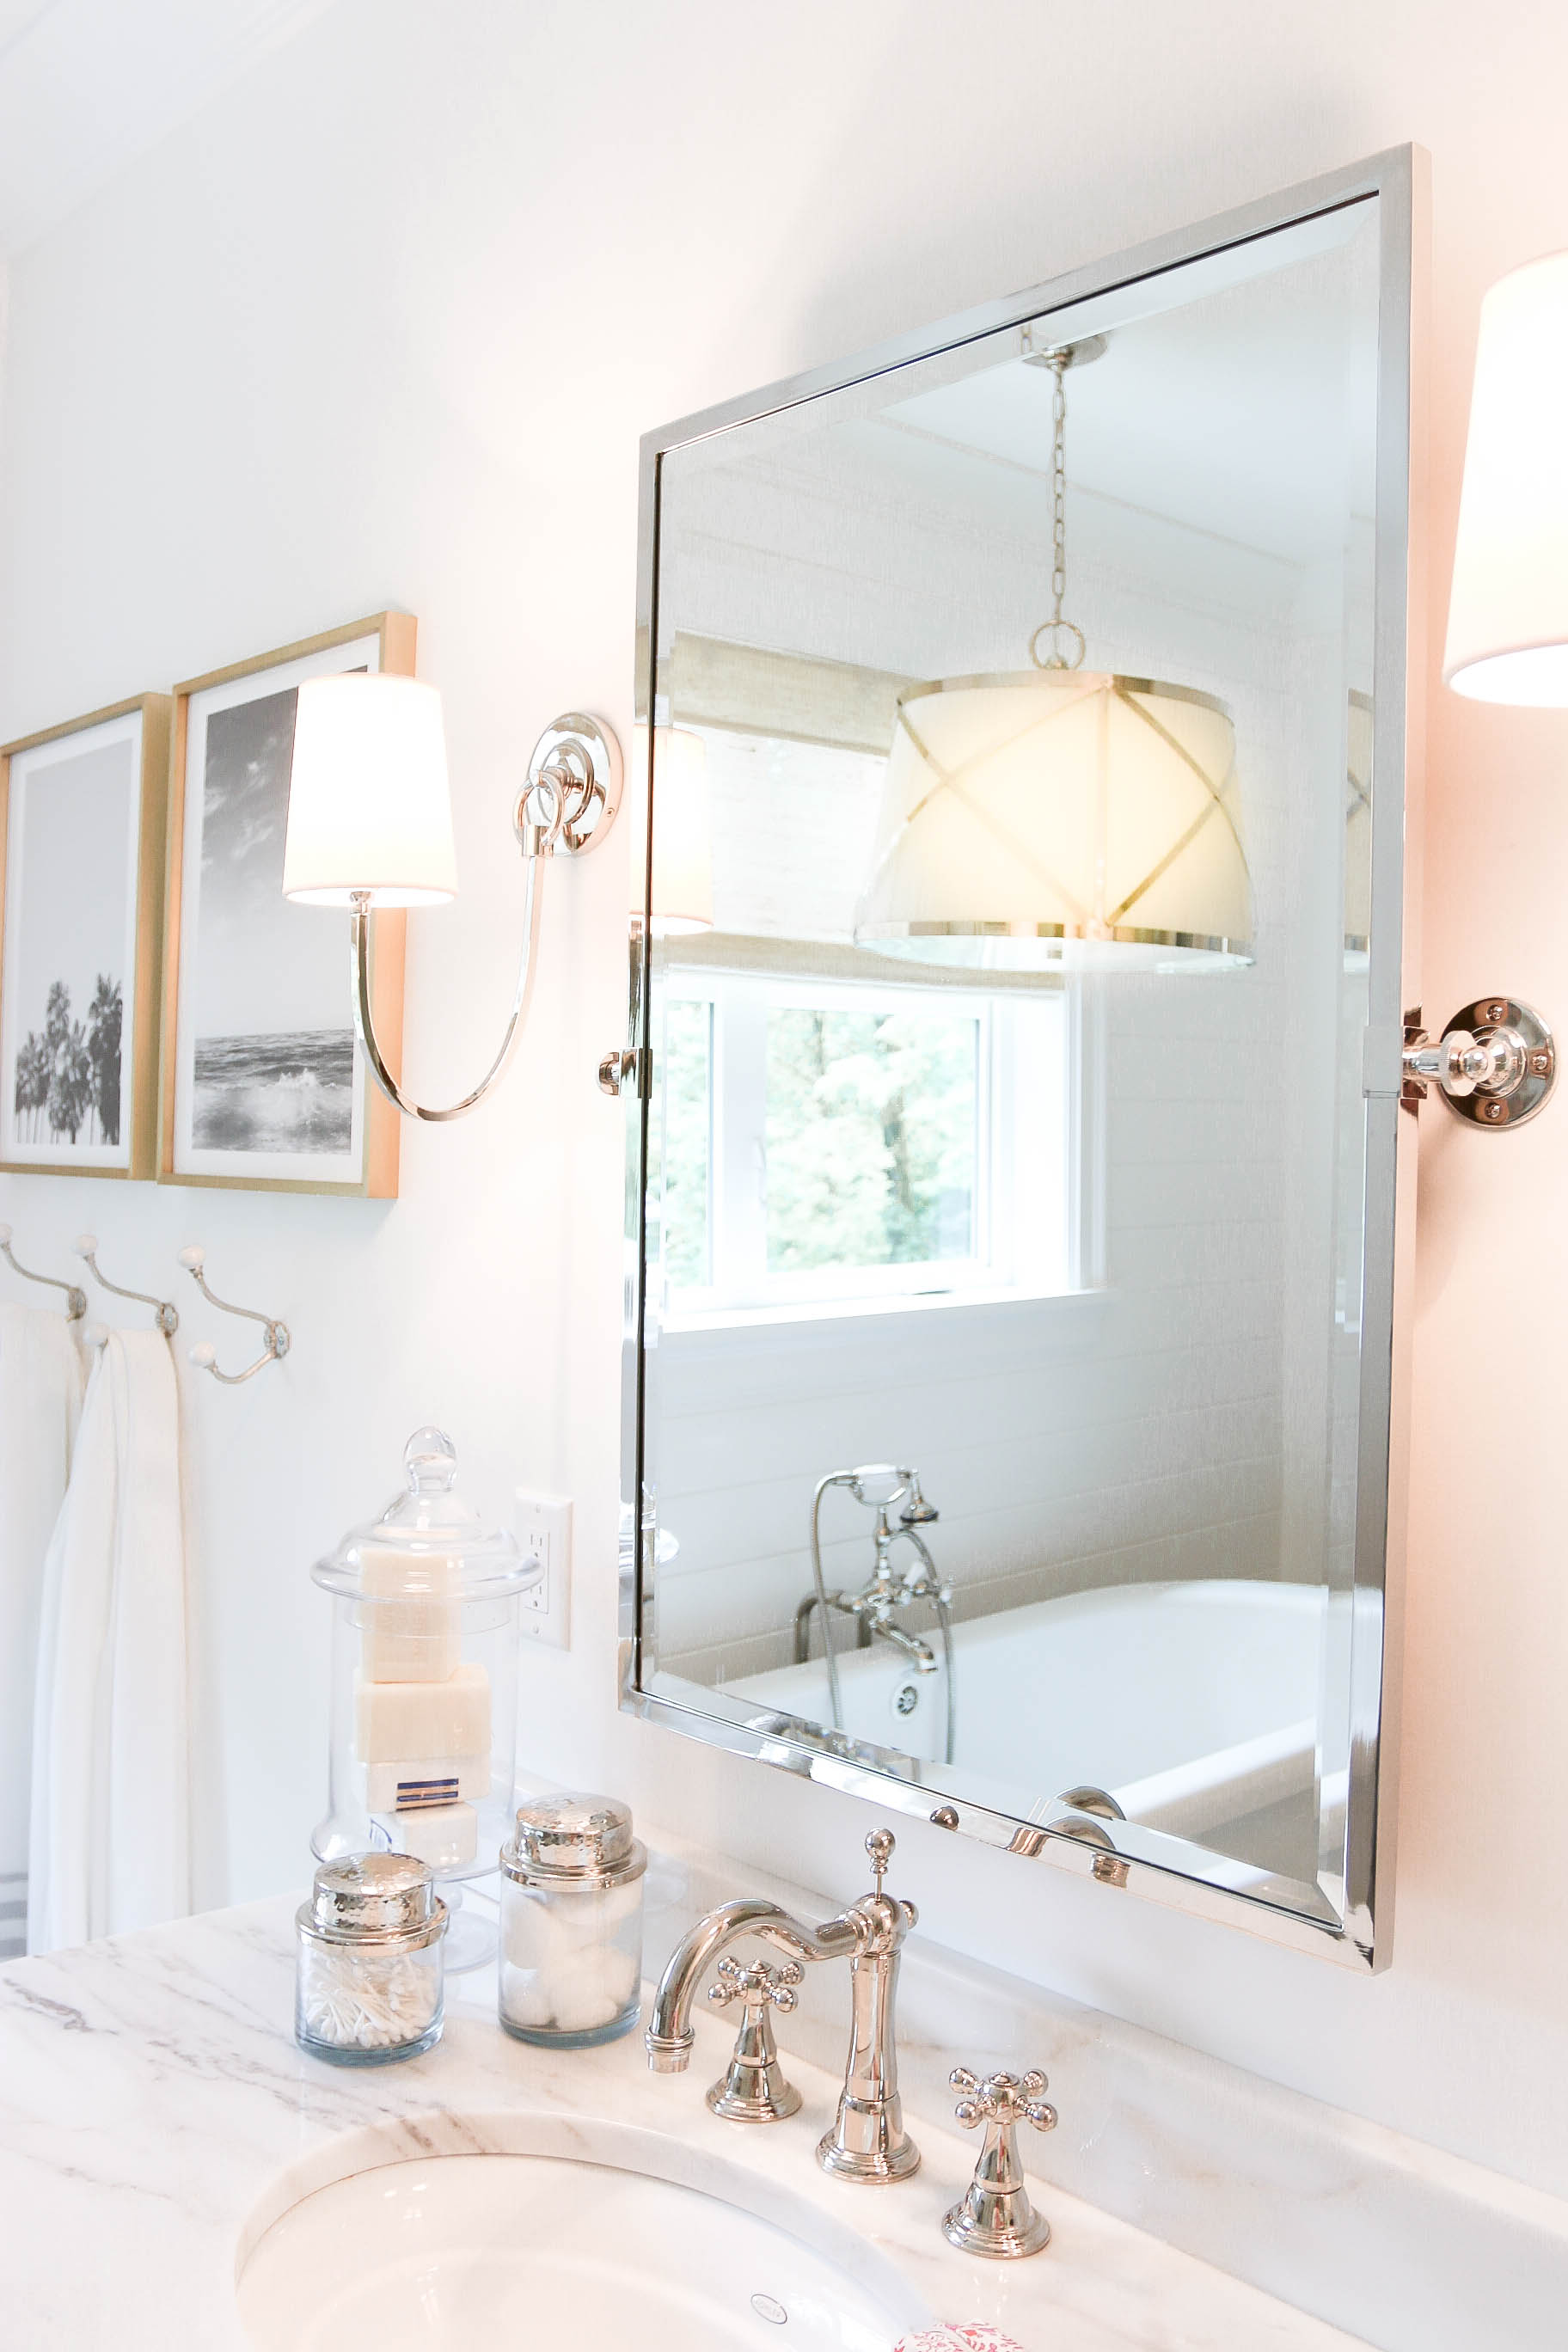 Lighting Bathroom Home Sylvania Monika Hibbs